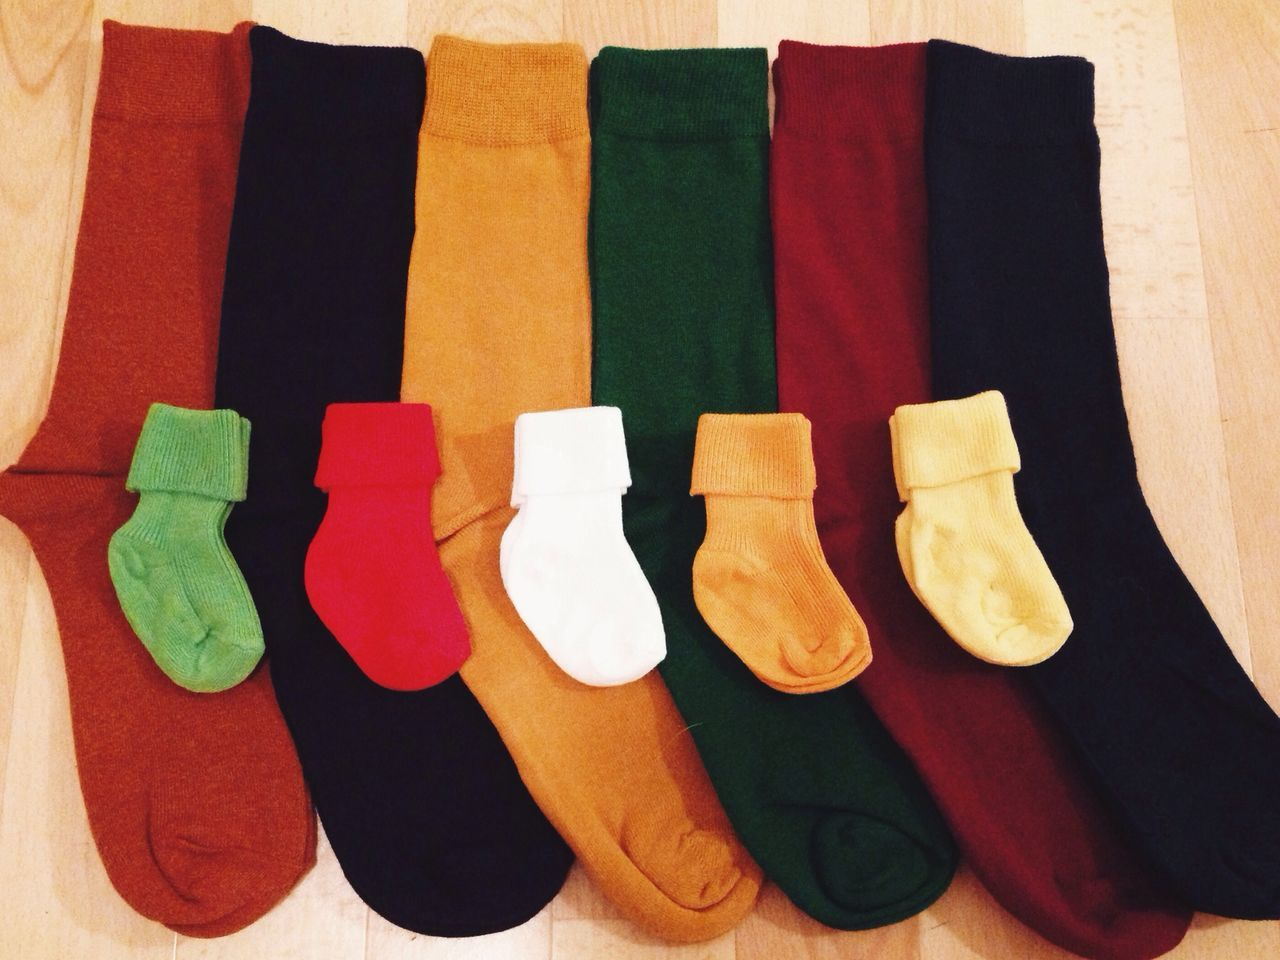 Comparison of small socks with large socks